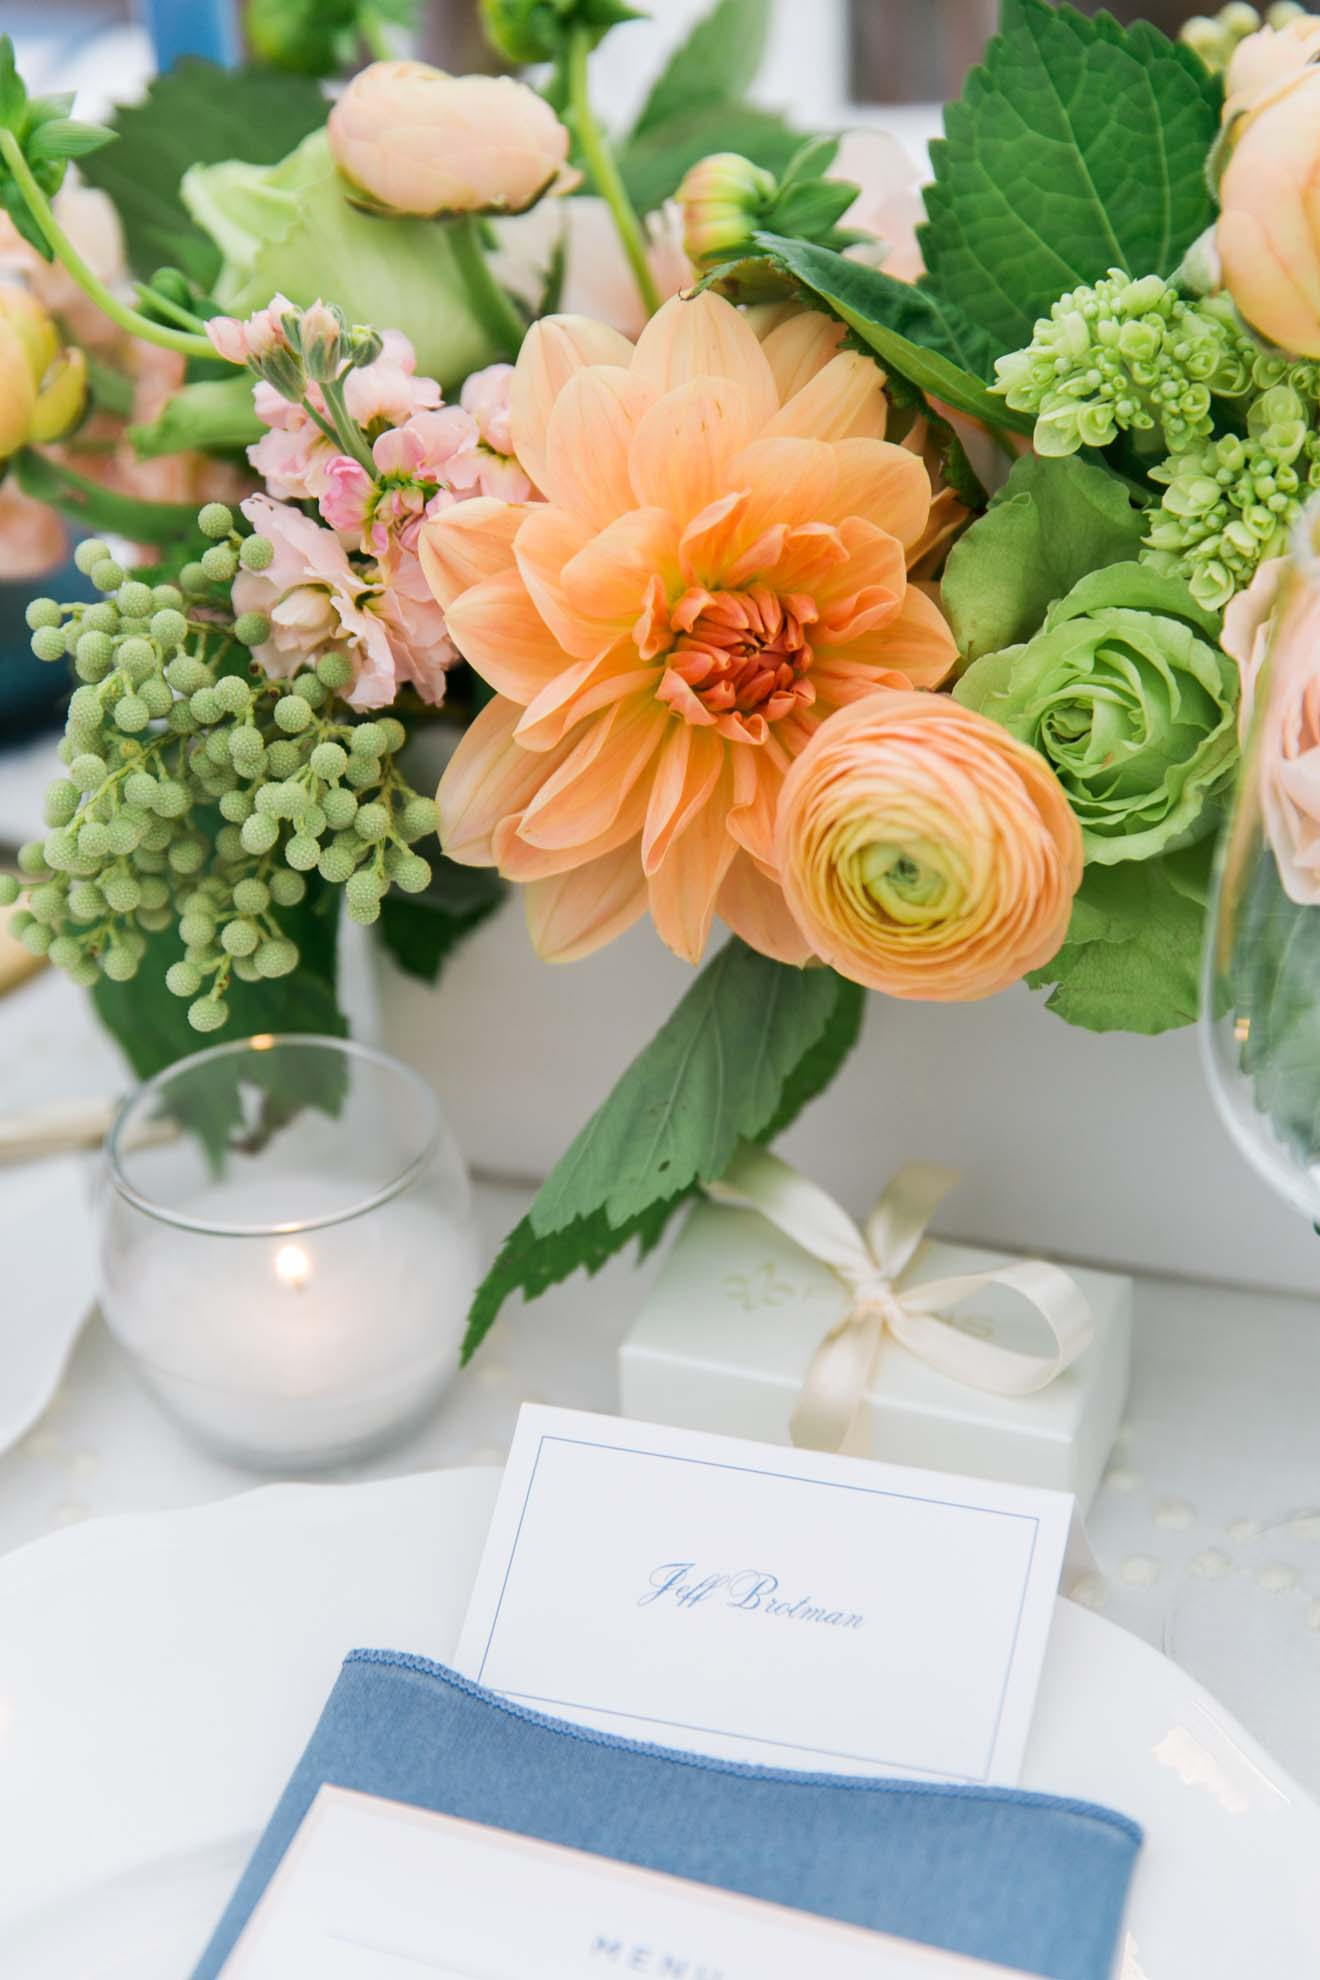 Centerpiece with orange dahlia, orange ranunculus, berzilia, green roses, in white vase